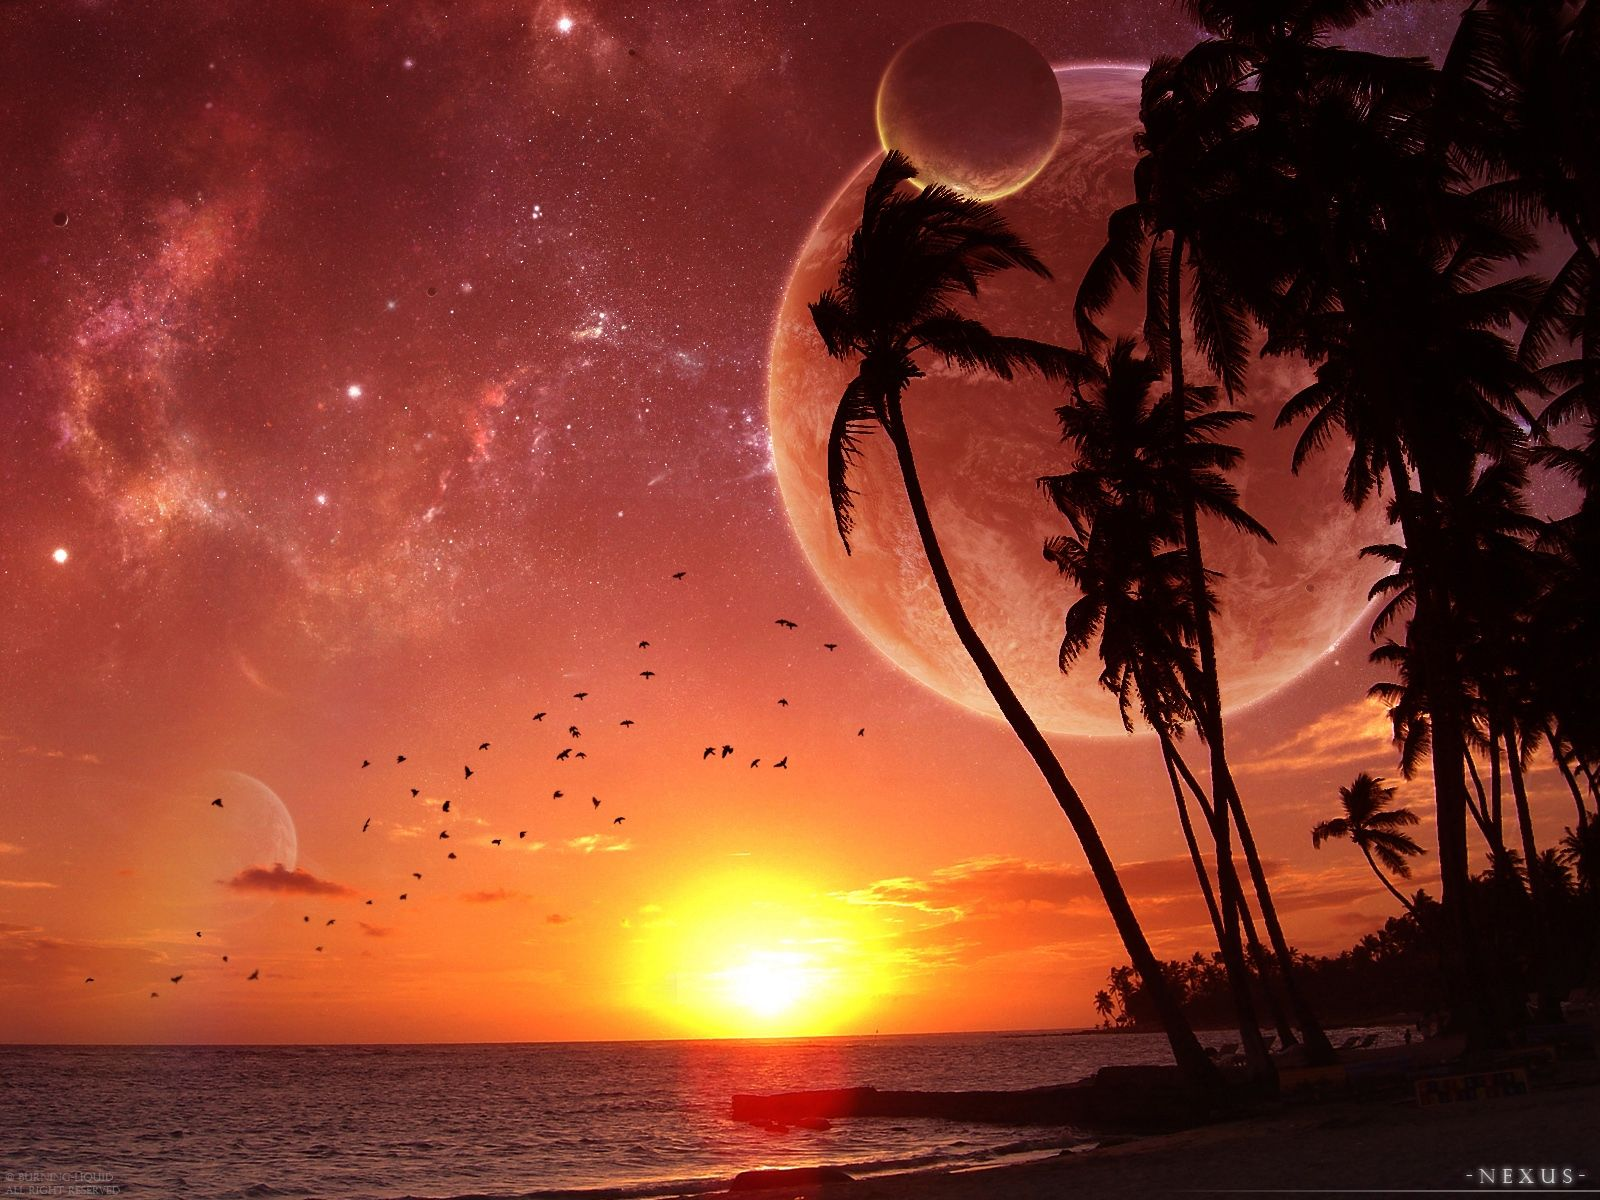 Fantasy | Pics - HD Wallpaper - image - Photo and Picture